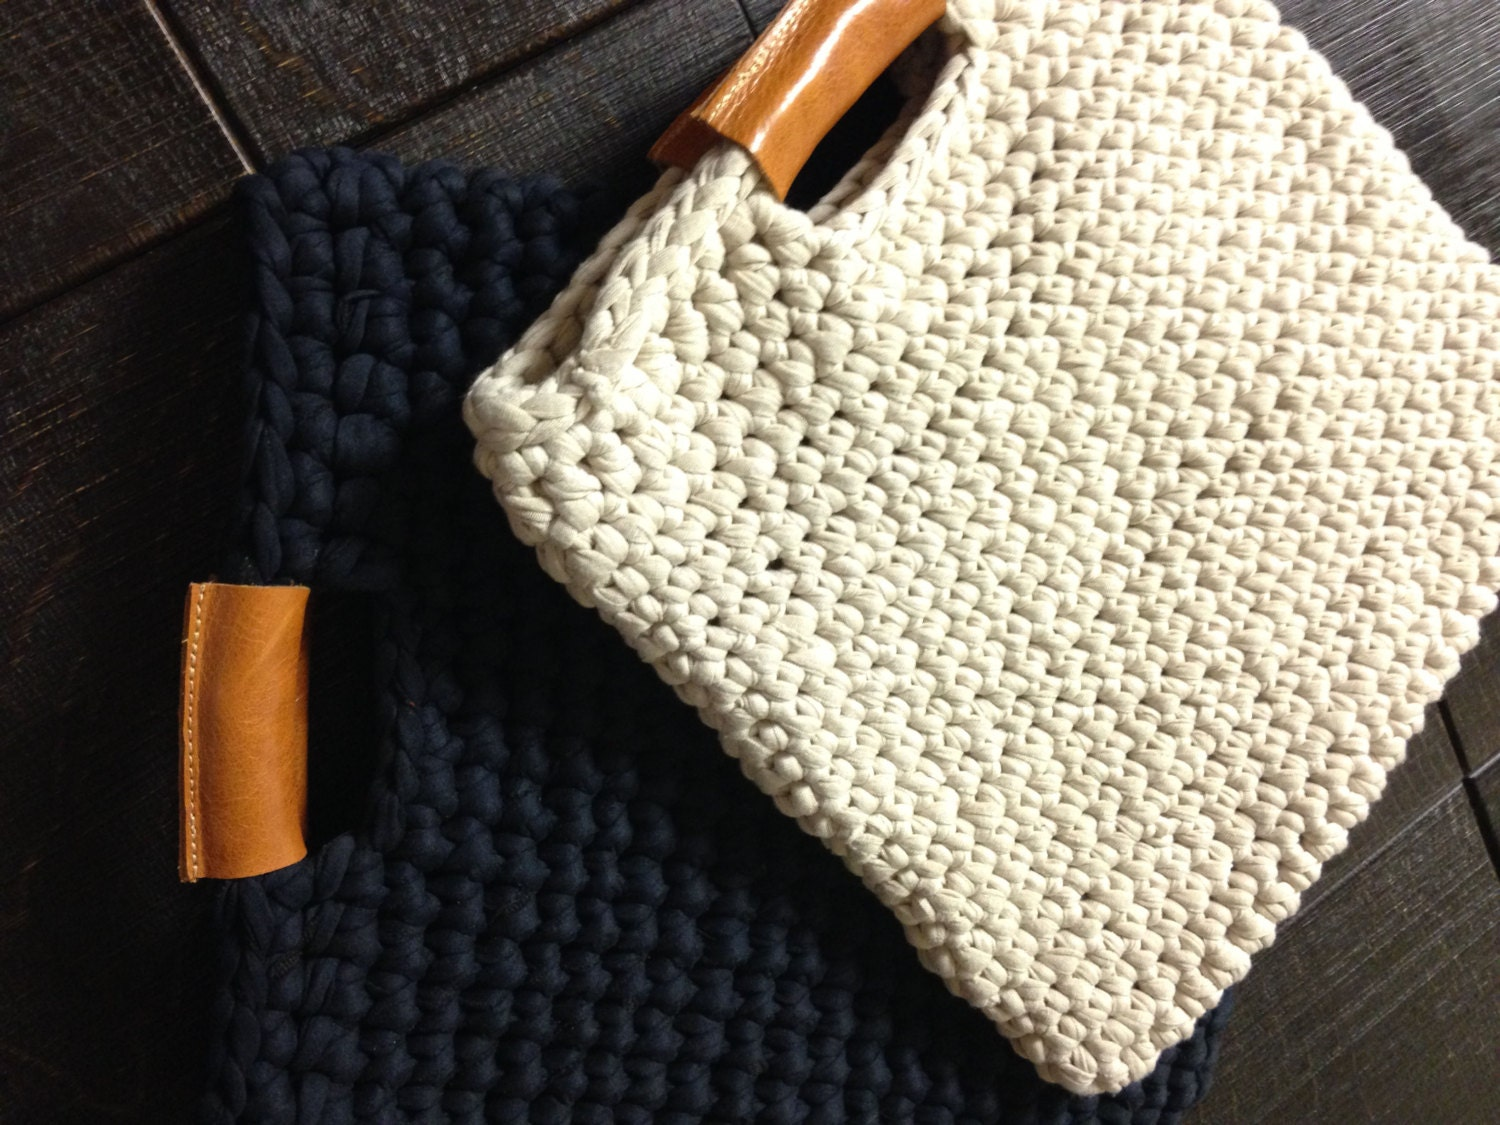 Chunky crochet bag with real leather handles by StudioInBudapest